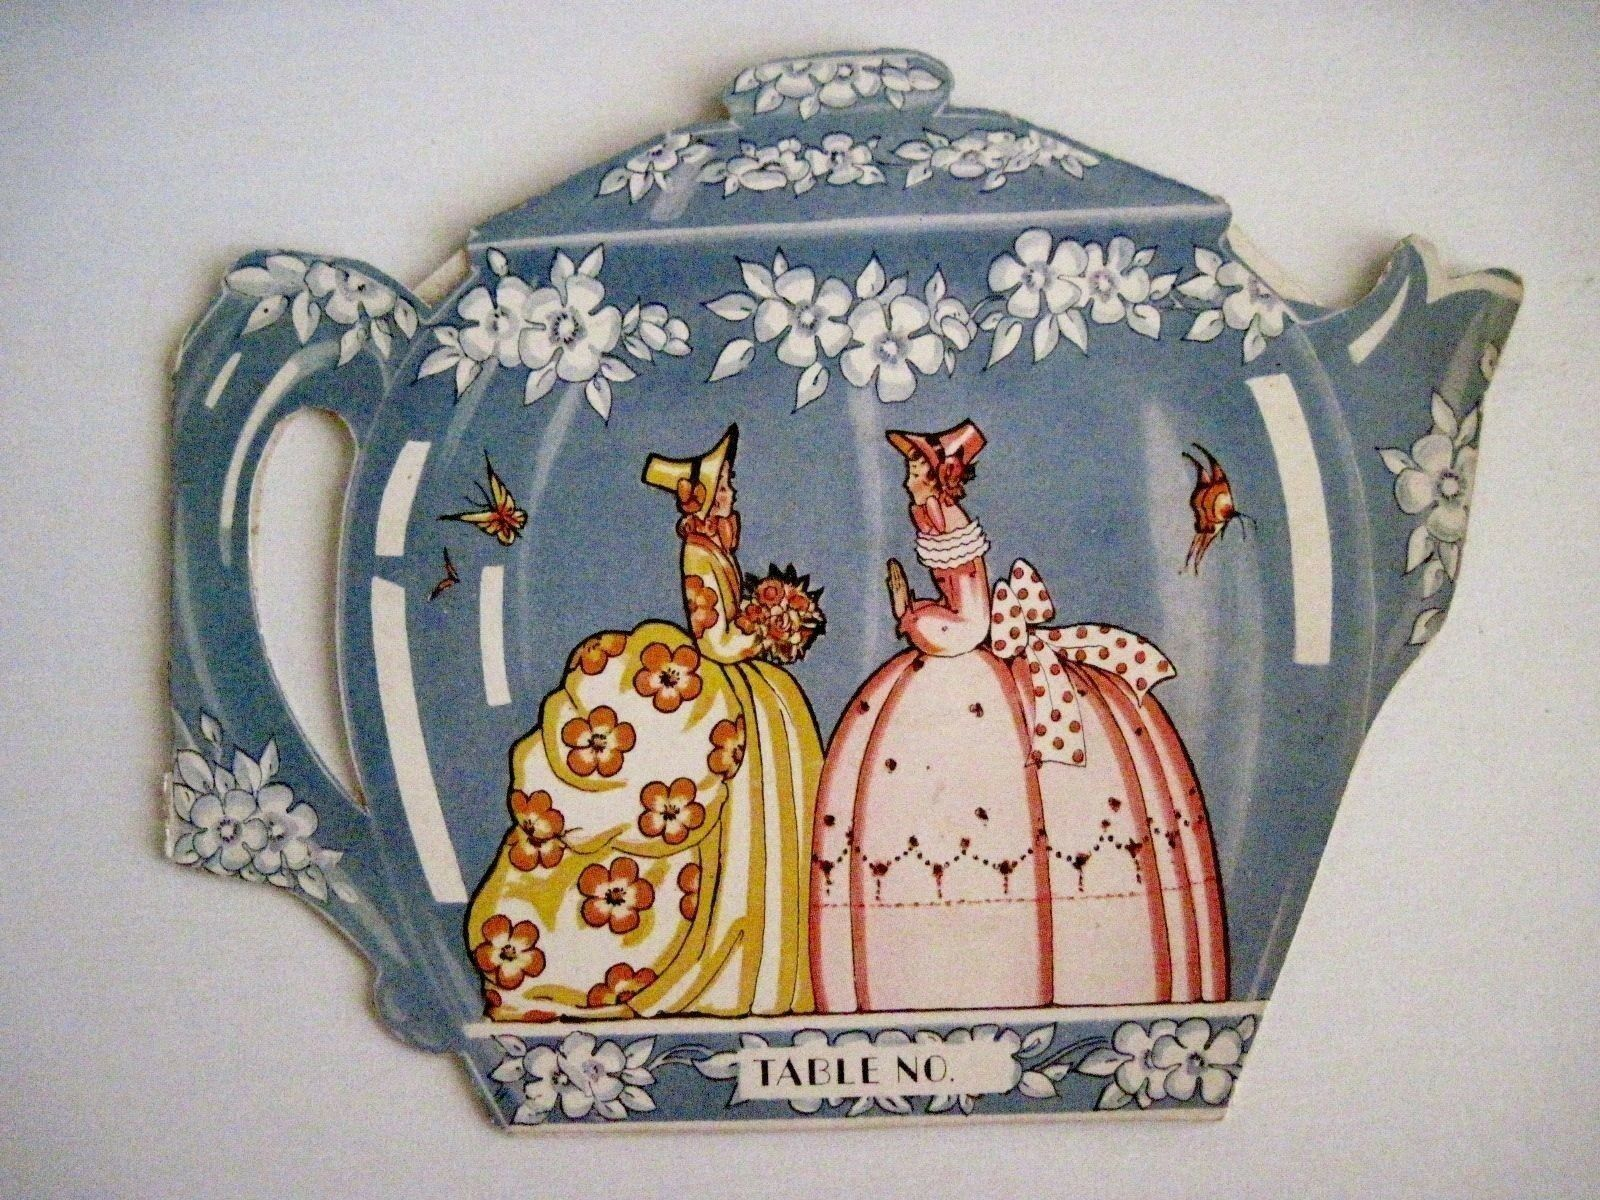 Delightful Vintage Bridge Tally Card In The Shape of A Tea Pot w Cups & Saucers